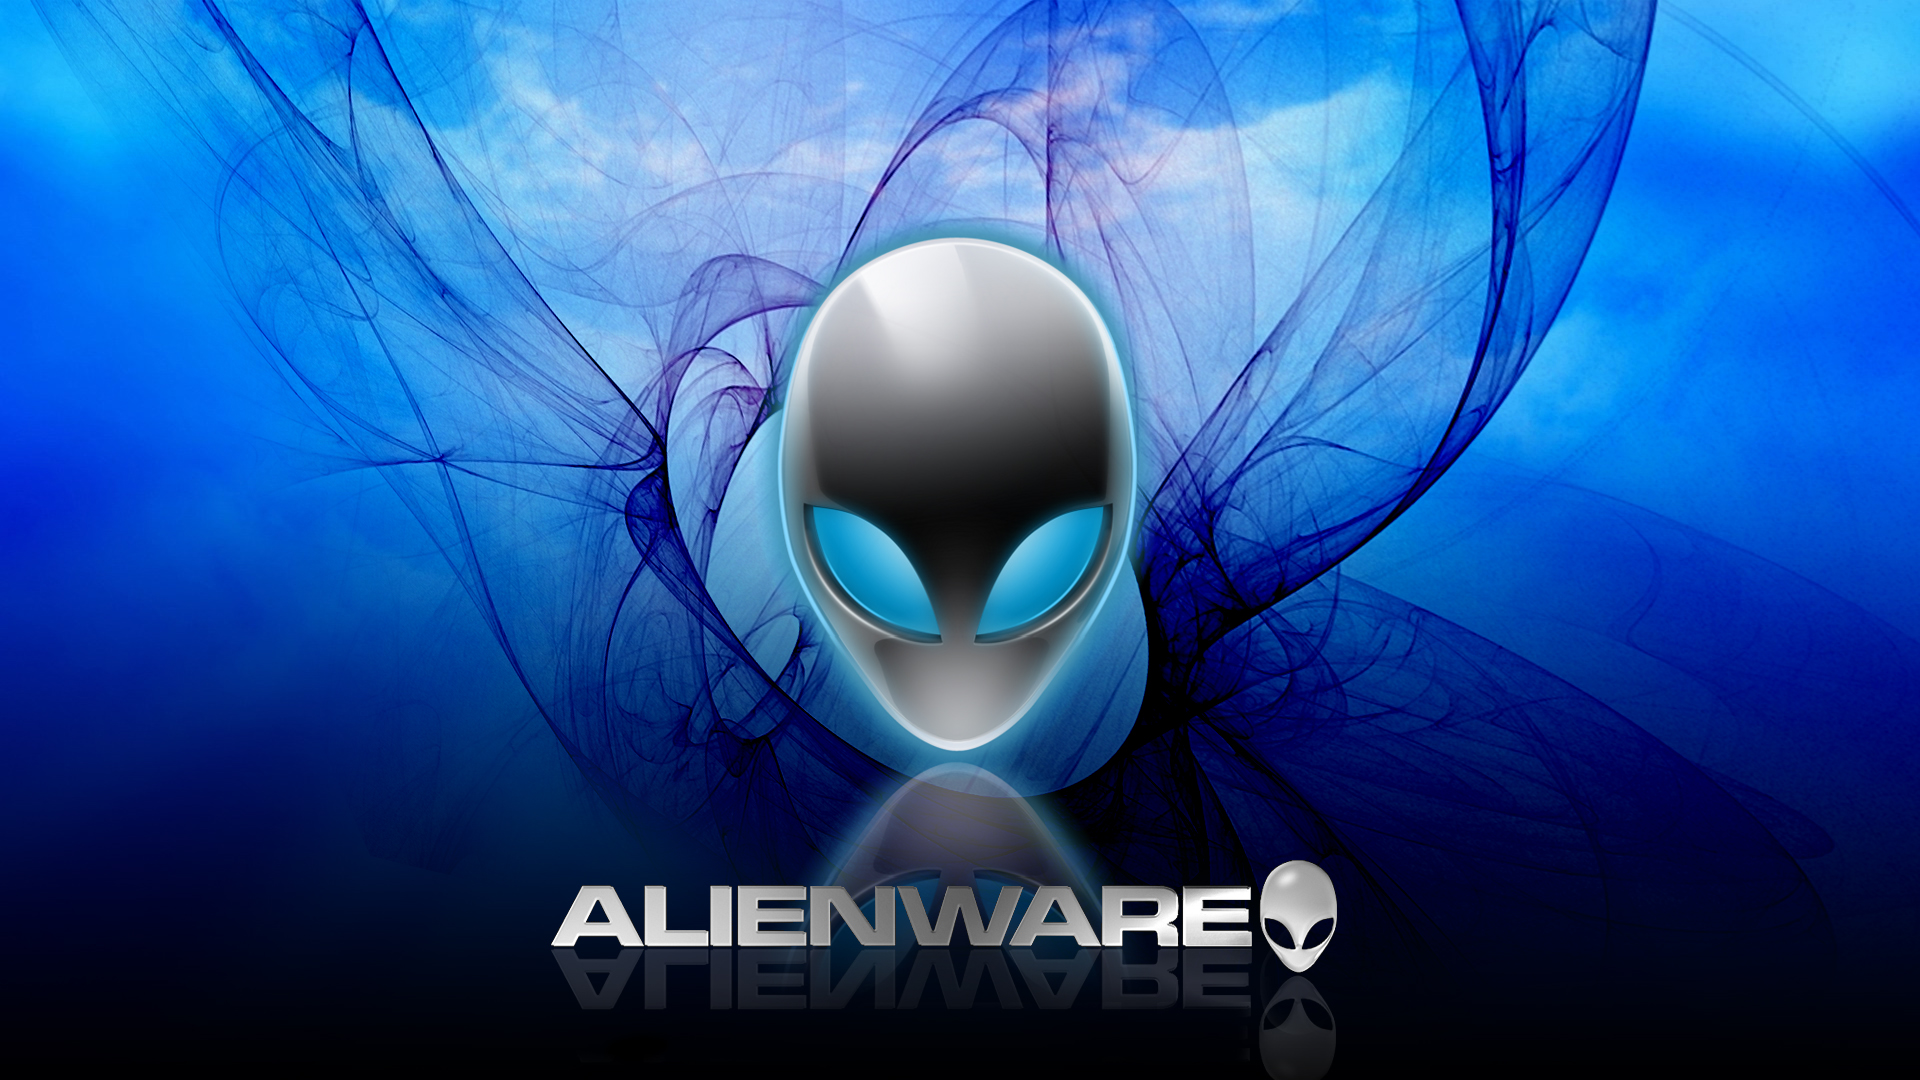 4K Alienware Wallpaper - WallpaperSafari